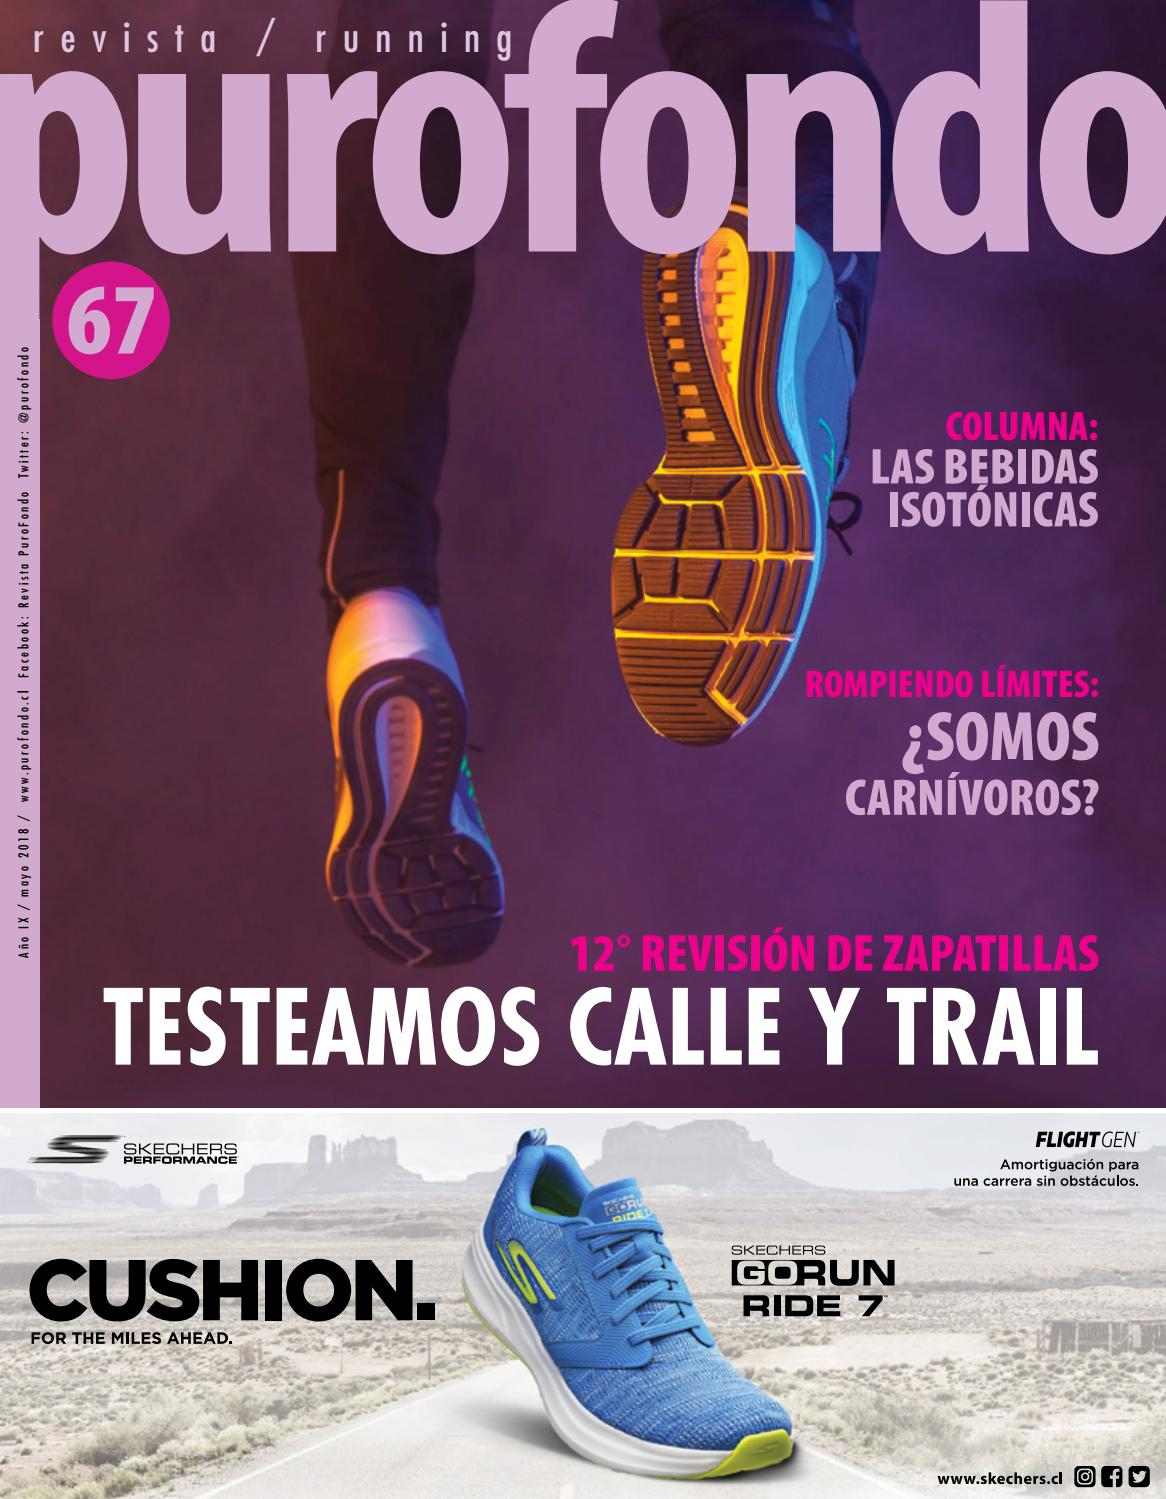 Purofondo ed.67 may 2018 by BEACTIVE COMUNICACIONES issuu